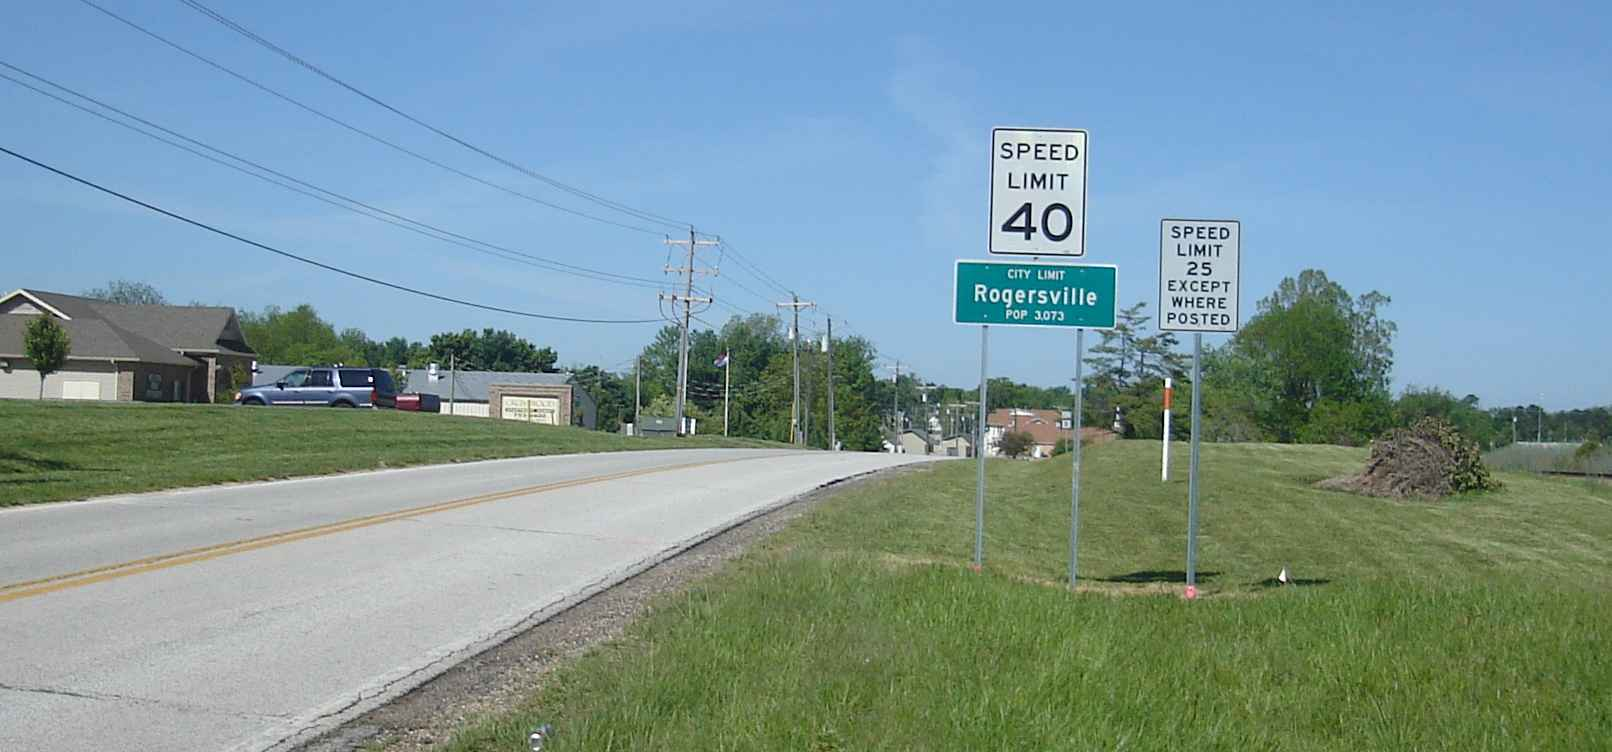 Rogerville city limit sign, population 3073